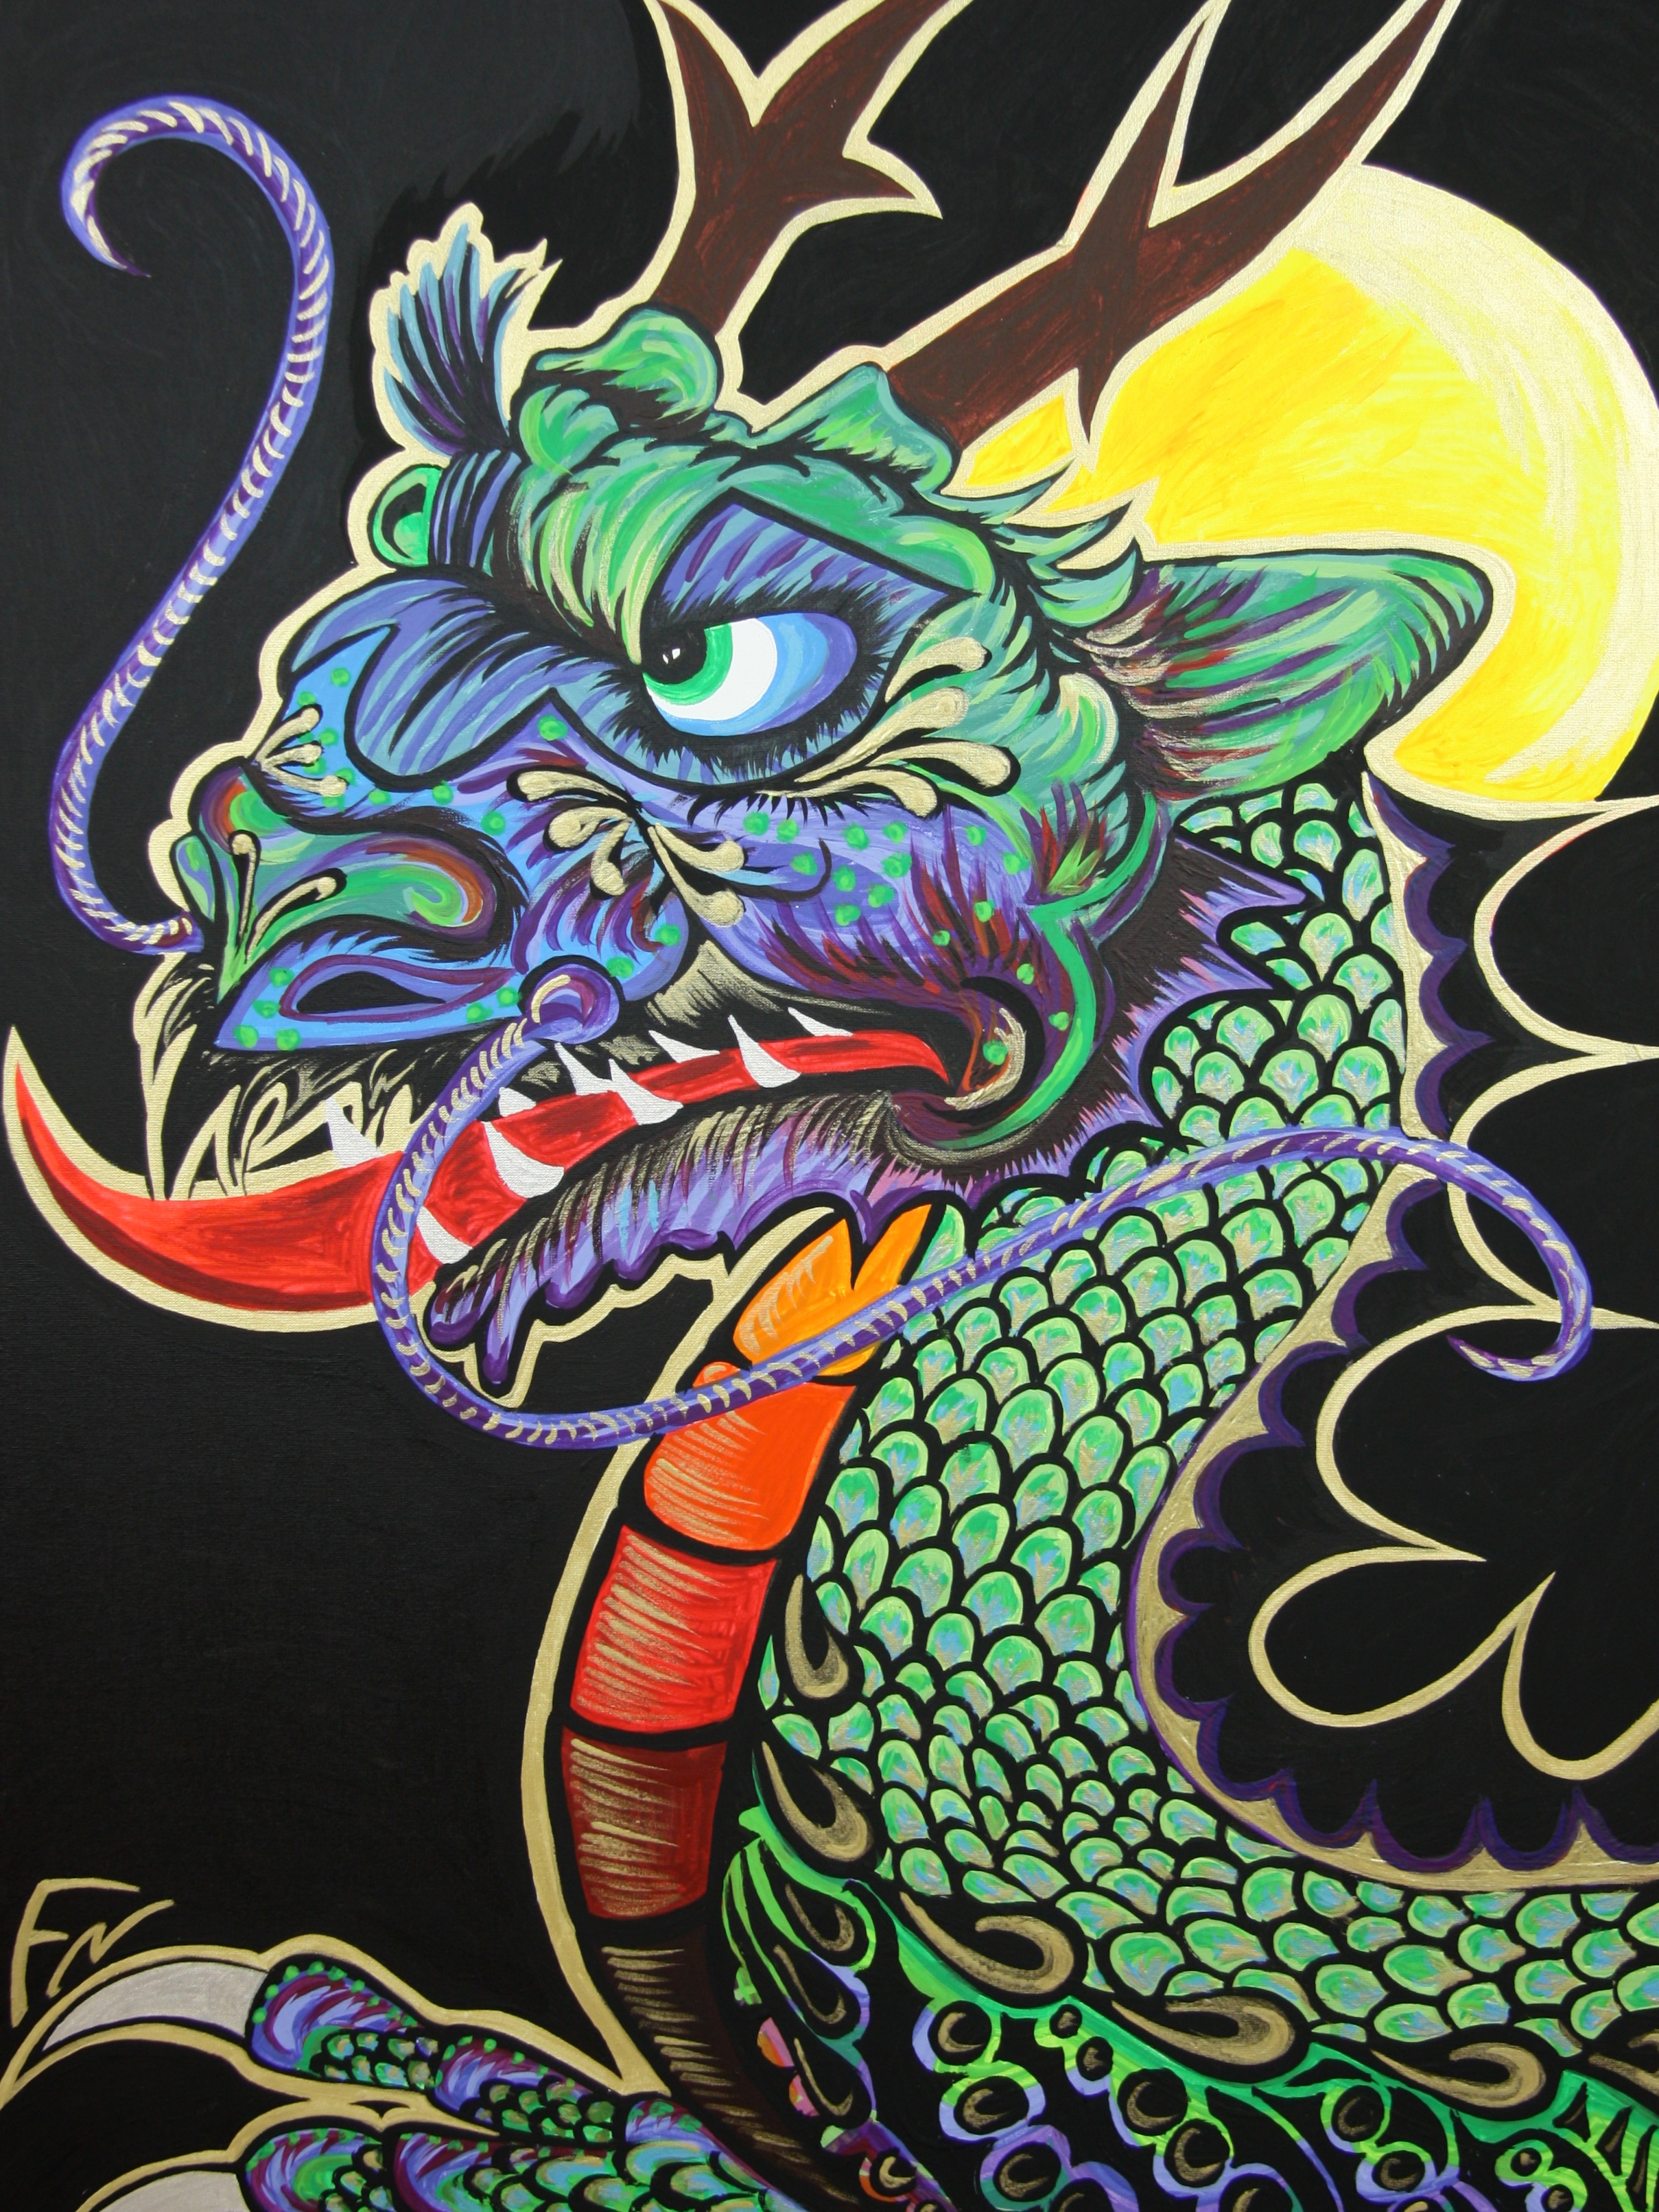 Lion Dragon Size 80x60cm Contact Feike for pricing info